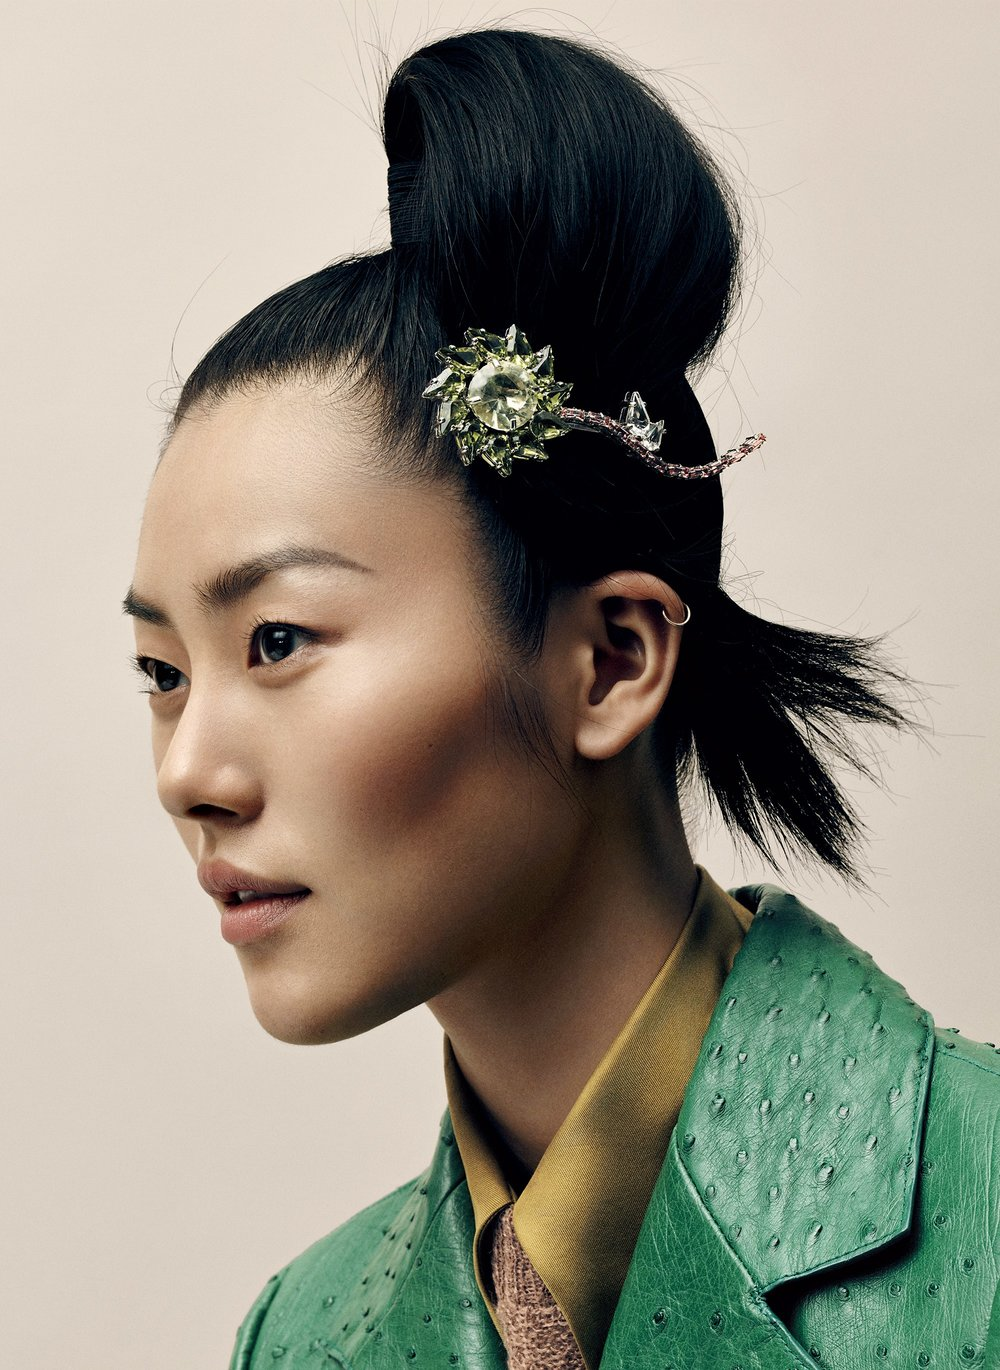 heirloom-jewelry-liu-wen.jpg